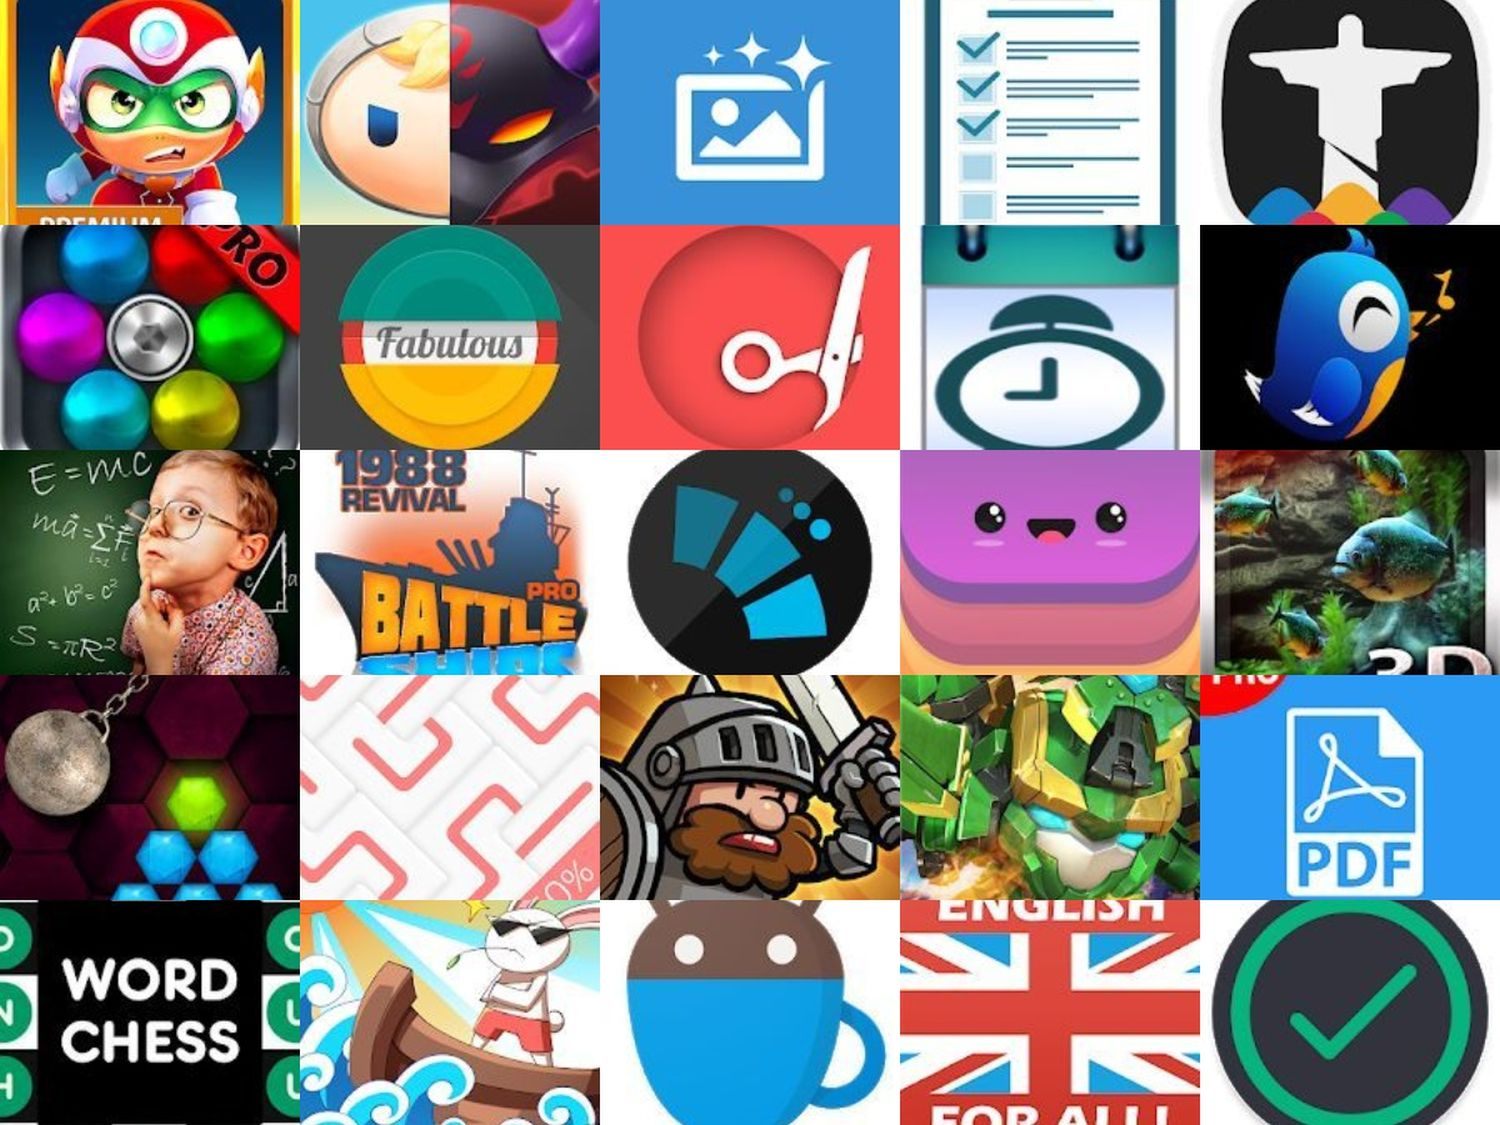 apps 02.01.2020